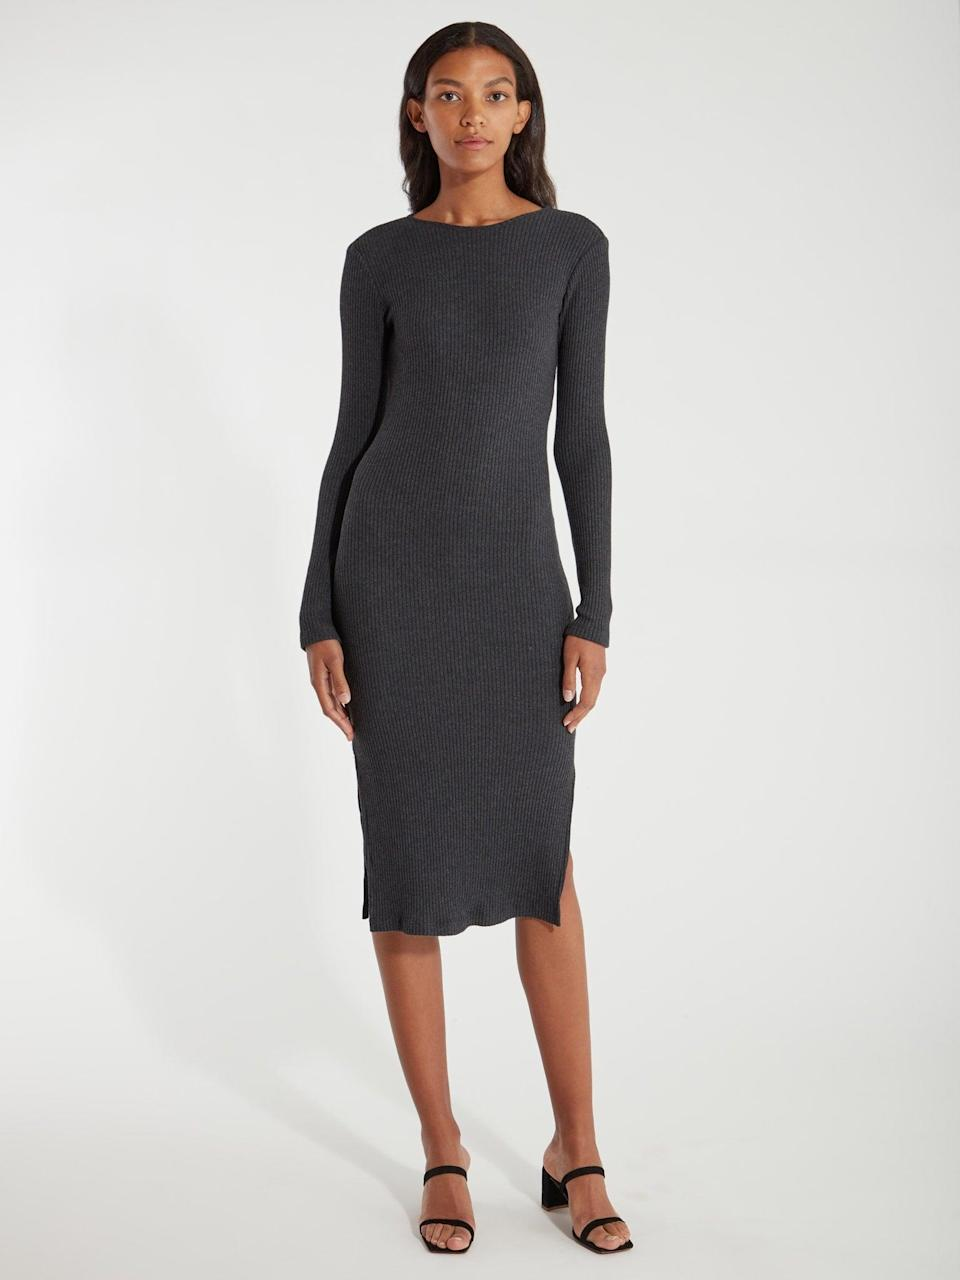 <p>This <span>Billie the Label Wilma Rib Knit Midi Dress</span> ($55, originally $128) is calling for a sunny brunch date.</p>